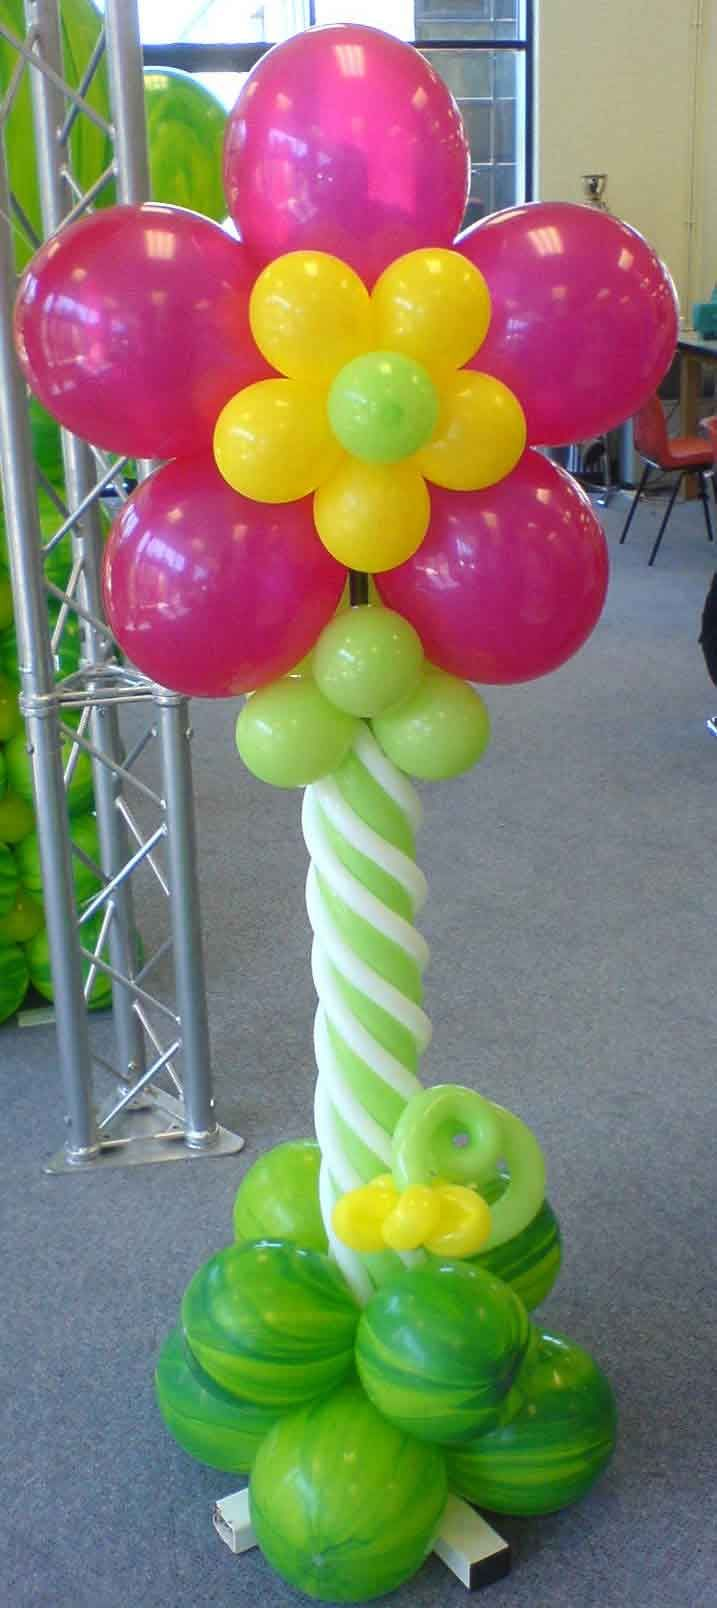 balloon flower : balloon flower decoration ideas - www.pureclipart.com